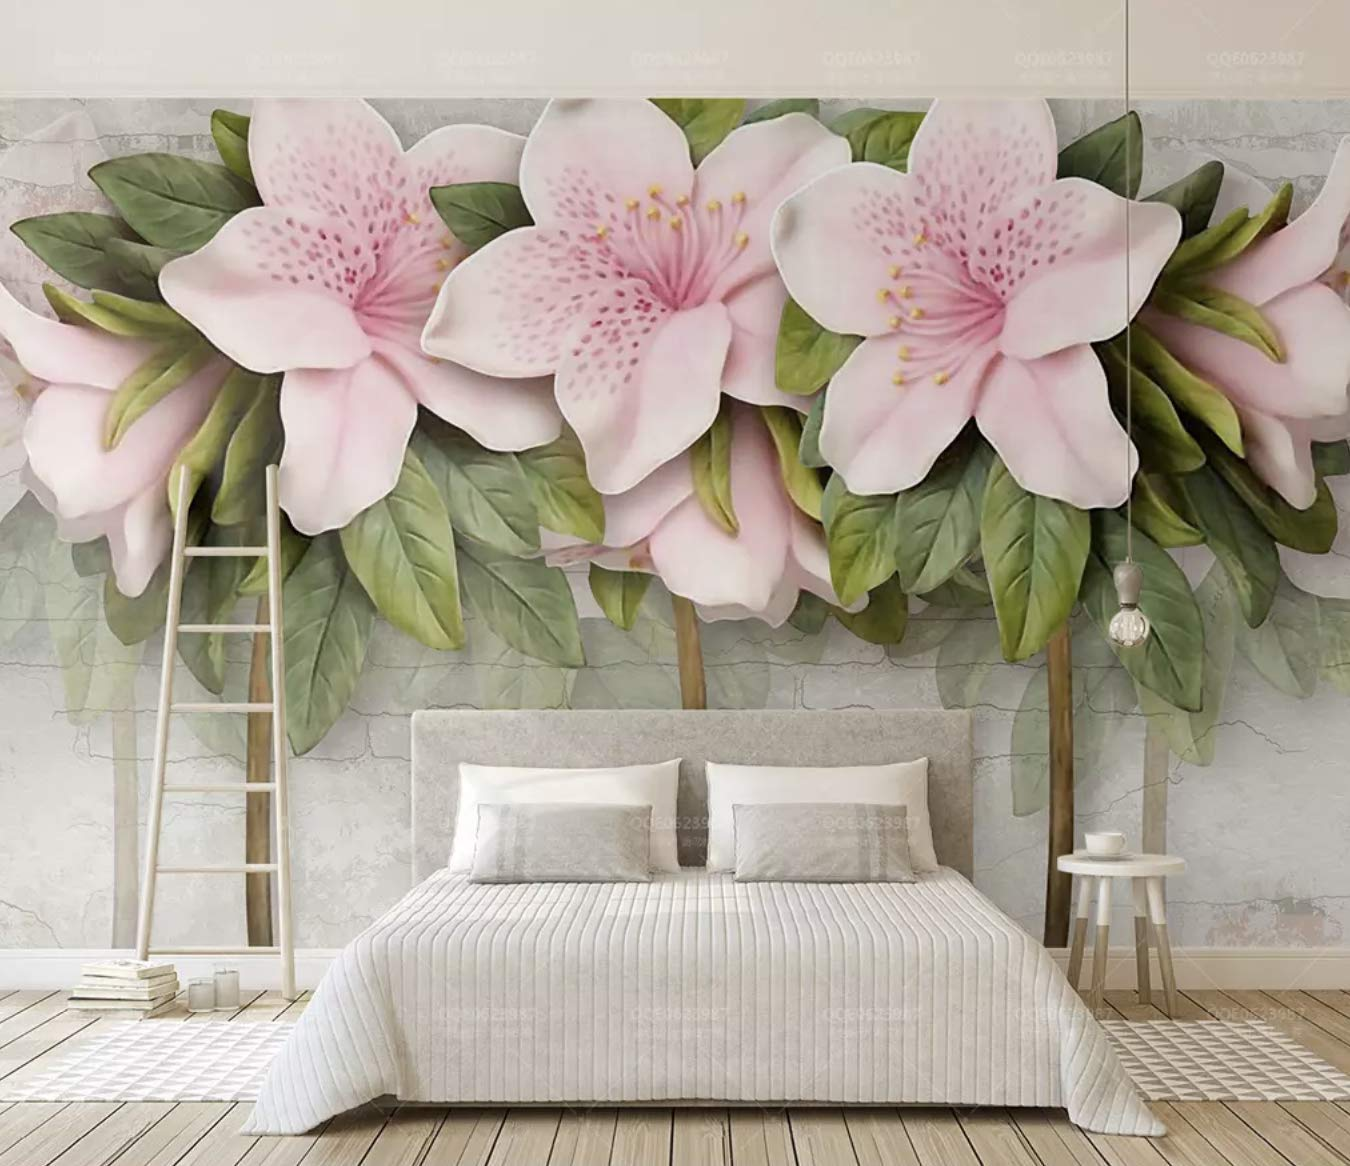 Amazon Com Murwall Floral Wallpaper Lily Flower Wall Mural 3d Flower Wall Decor Classic Cafe Decor Living Room Bedroom Entryway Tools Home Improvement